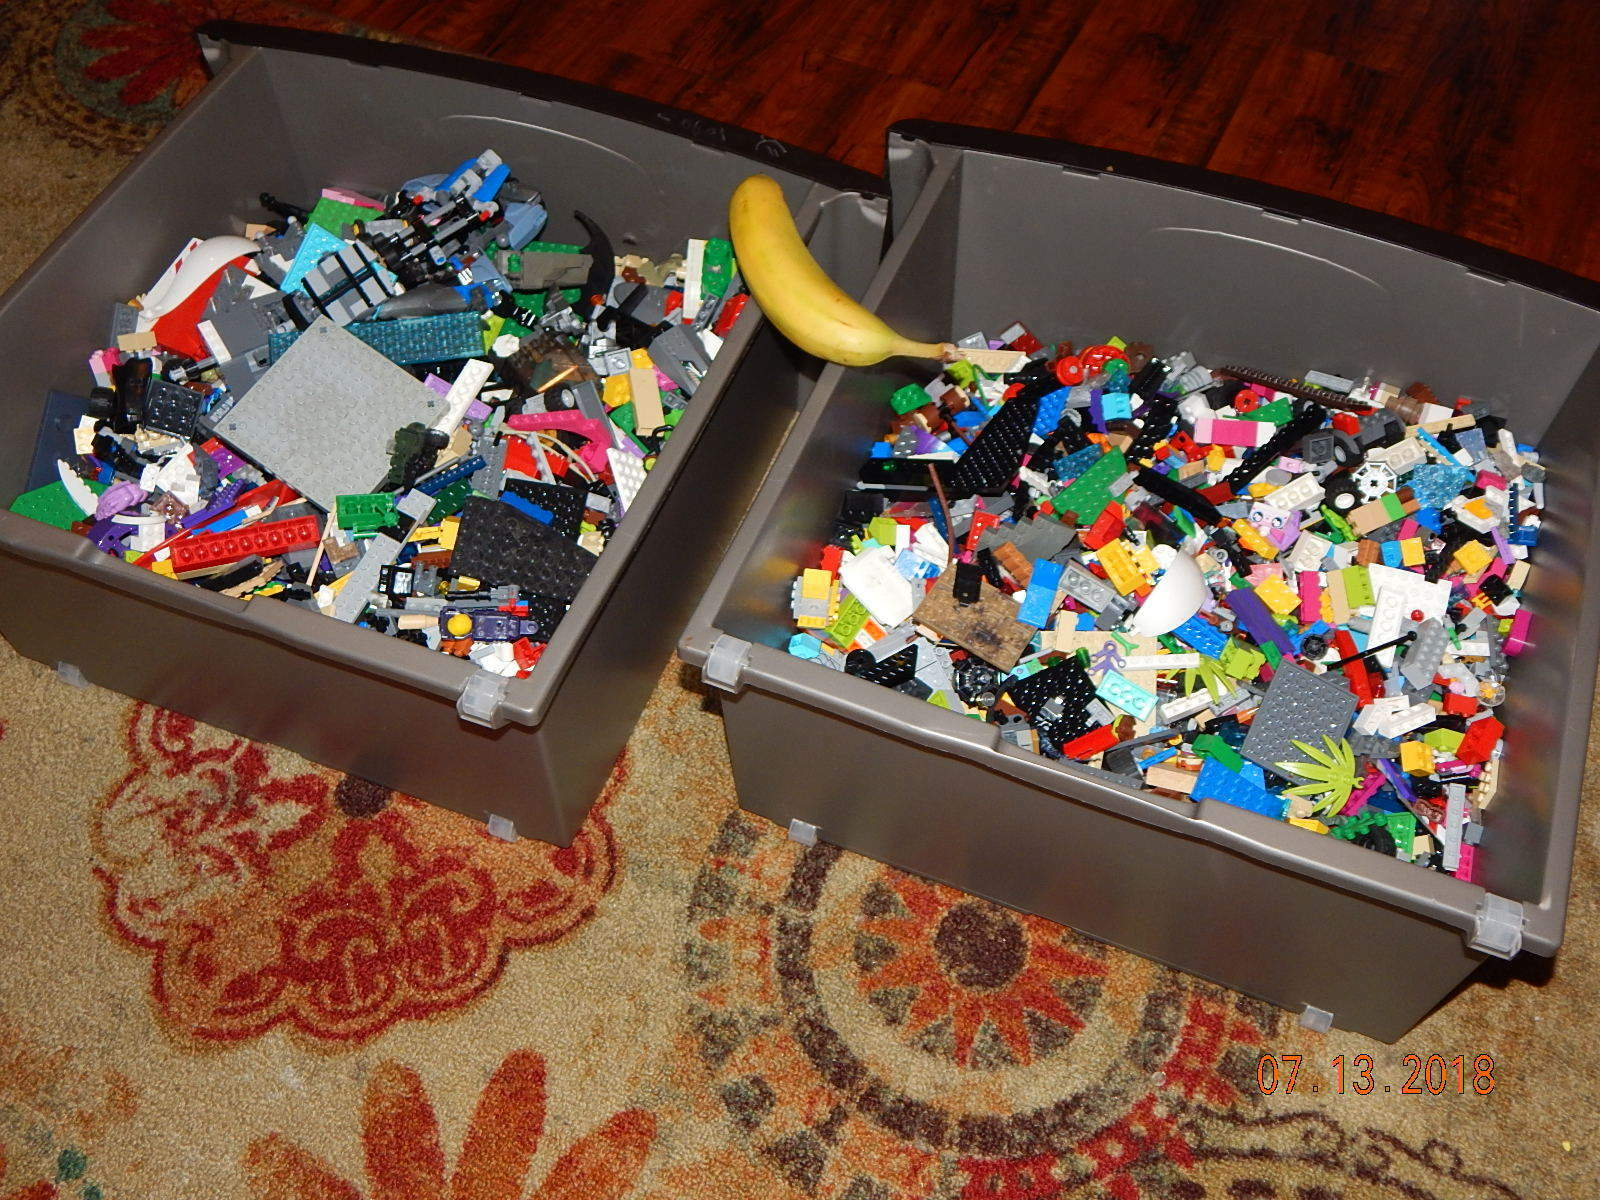 LEGO LOT     26 LBS      ASSORTED PIECES BASE PLATES VARIOUS INSTRUCTION MANUALS